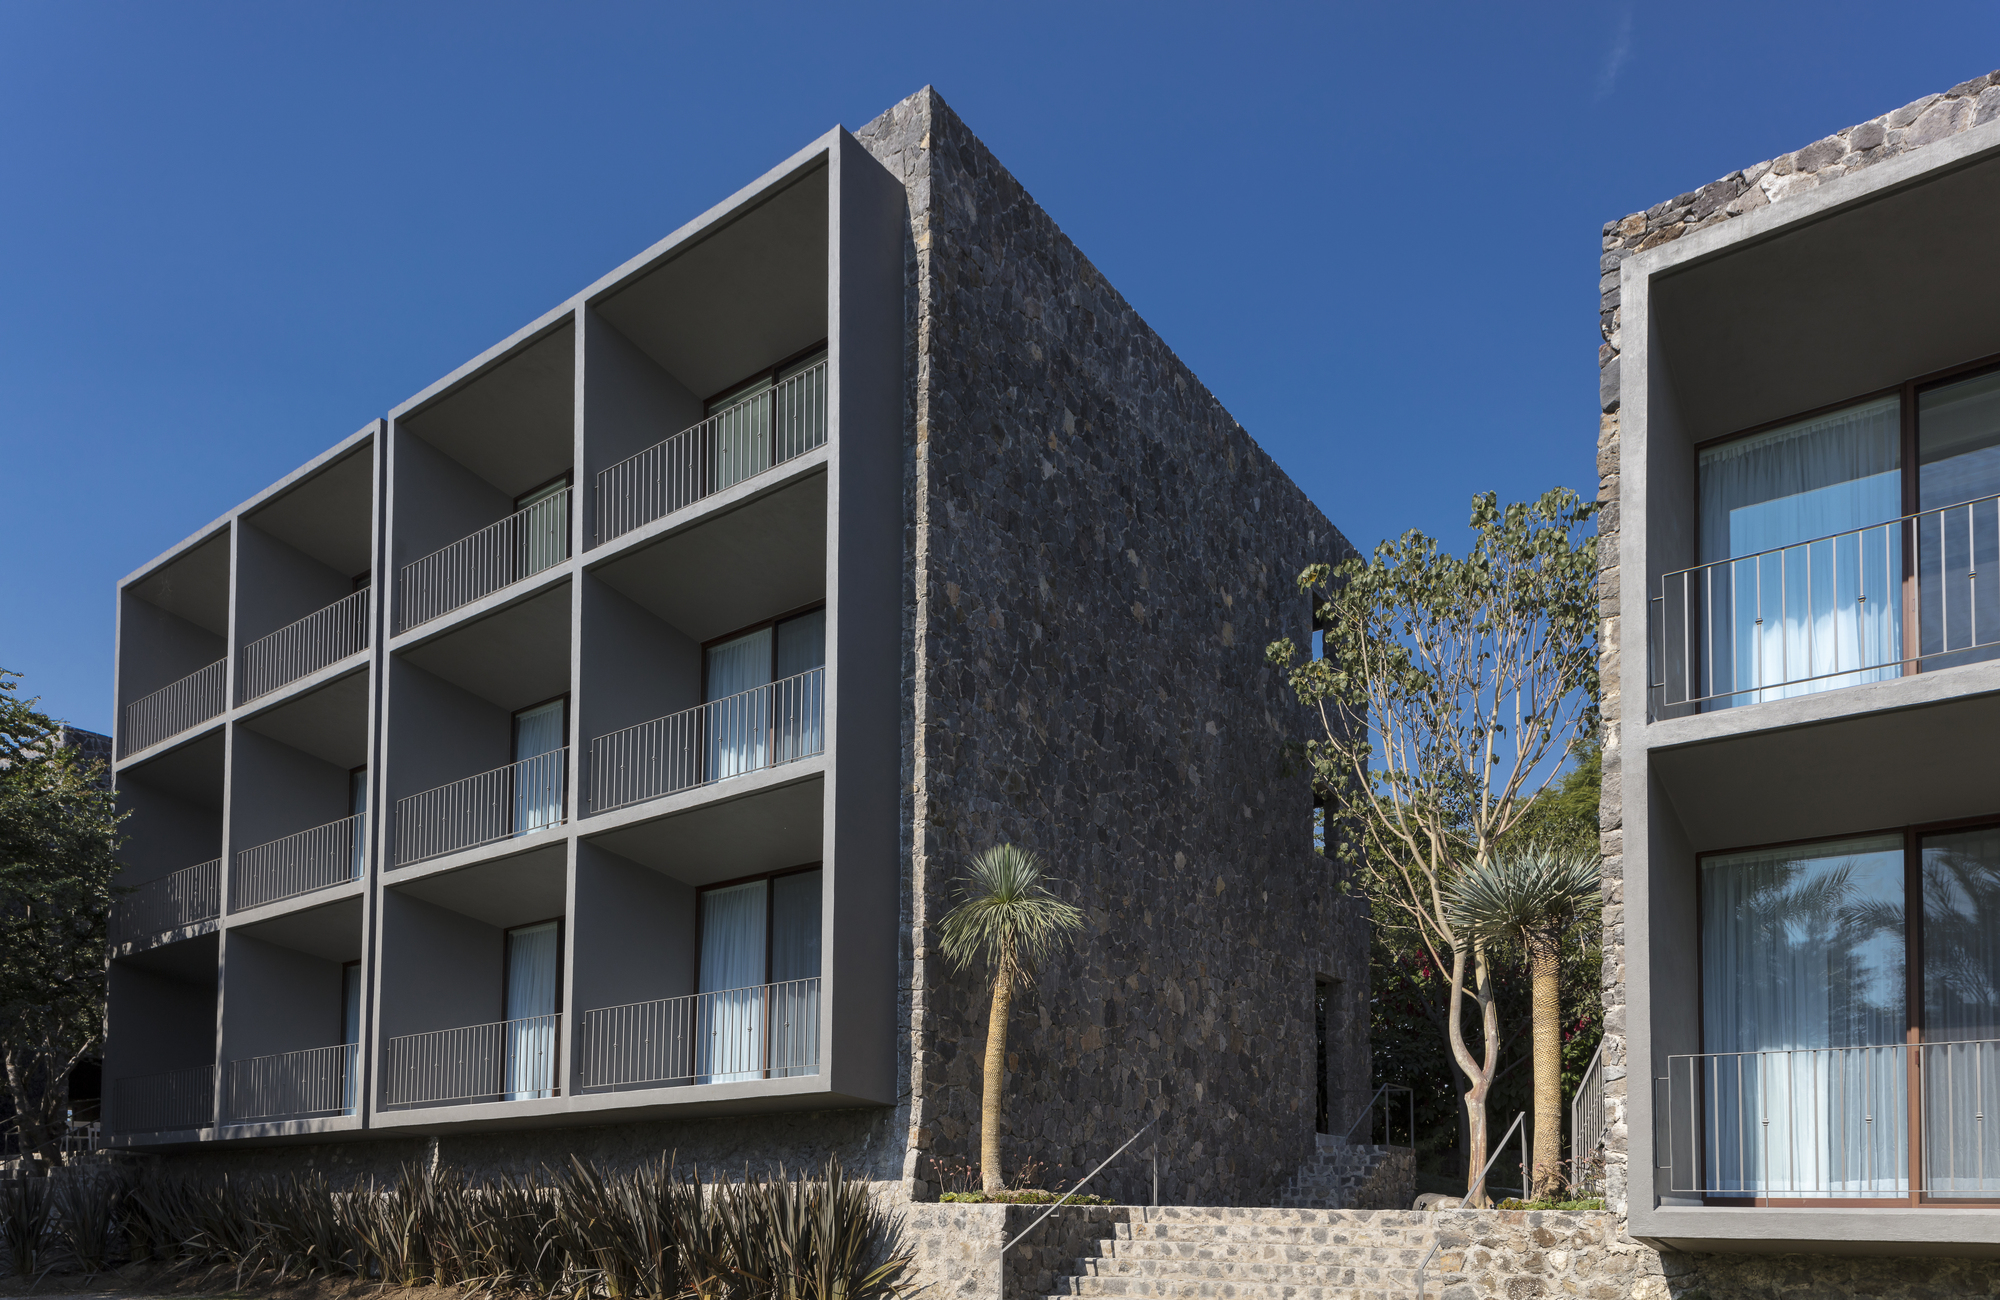 Hotel huayac n t3arc archdaily brasil for Small hotel building design